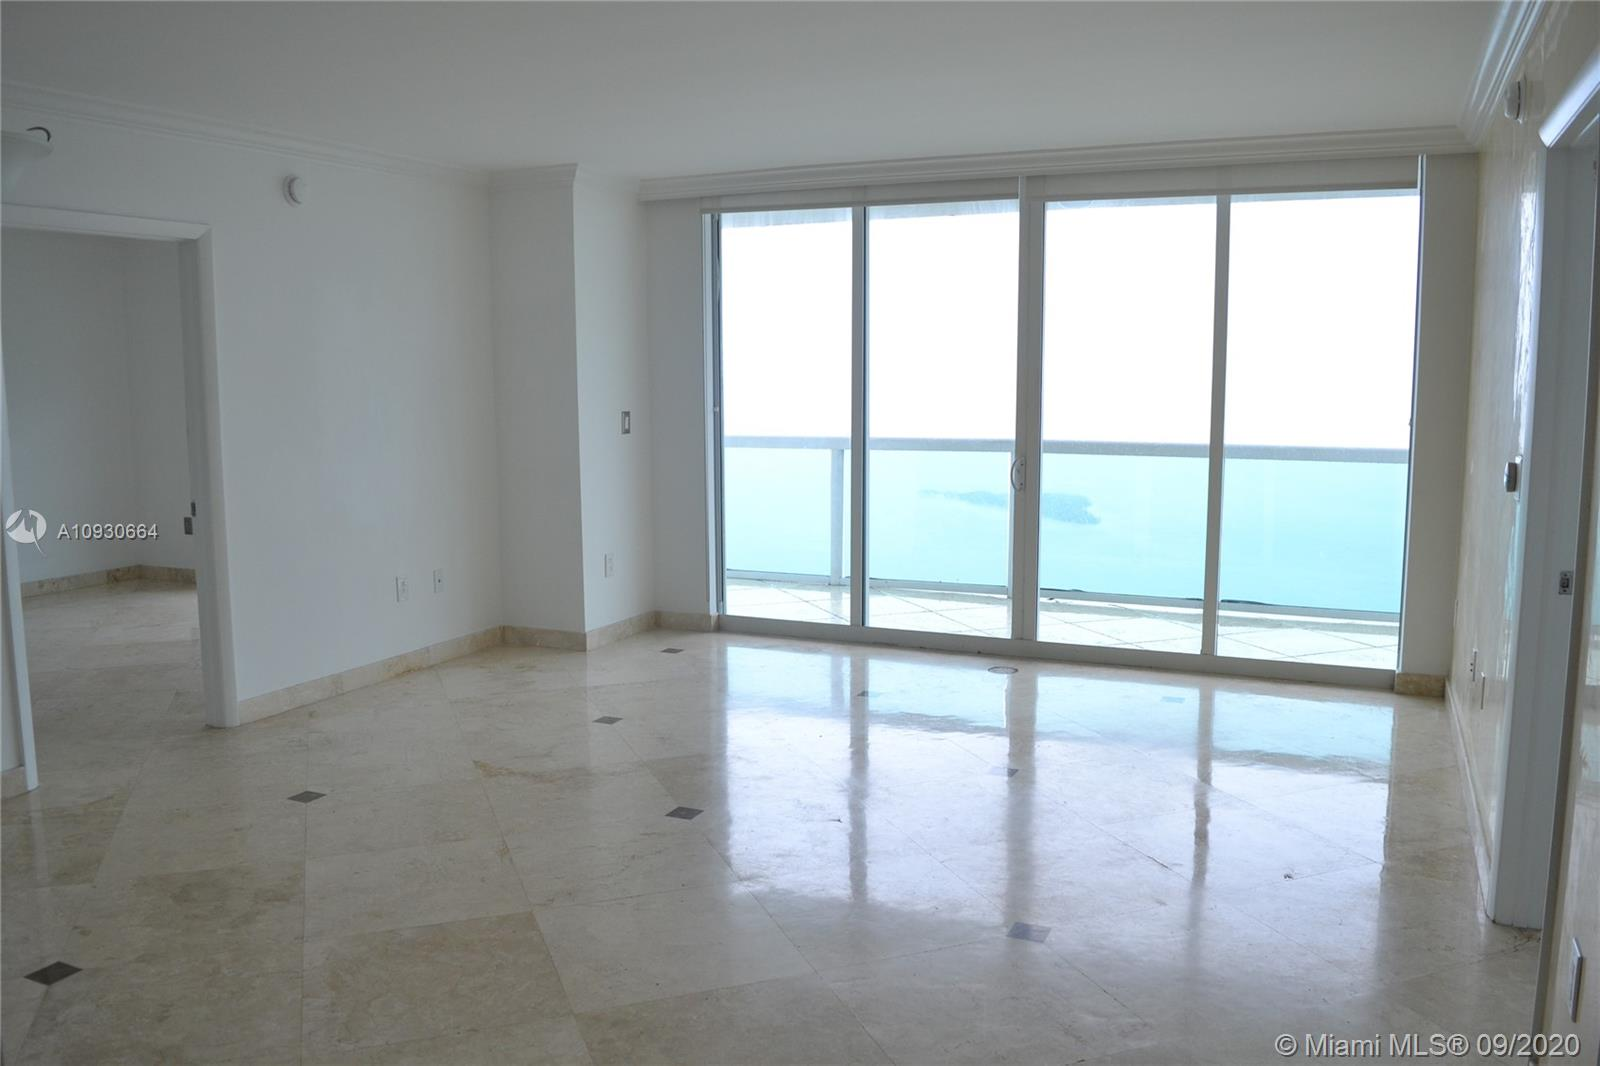 EVEN ON RAINY DAYS THESE VIEWS ARE MAJESTIC! Enjoy amazing panoramic views of Biscayne Bay from this gorgeous apartment in the sky! This 2 bedroom / 2 bathroom split plan apartment has been upgraded to feature marble floors throughout the bedrooms and living areas, new front loading washer/dryer, the kitchen overlooks the dining area with granite counter tops and top of the line stainless steel appliances. Beautiful pet friendly park in front of the building features a dog area, work out stations, tennis, volleyball and much more. And once again, the views from the 41st floor are simply breathtaking. Looking to rent at the prestigious 1800 Club Building? Then look no further!